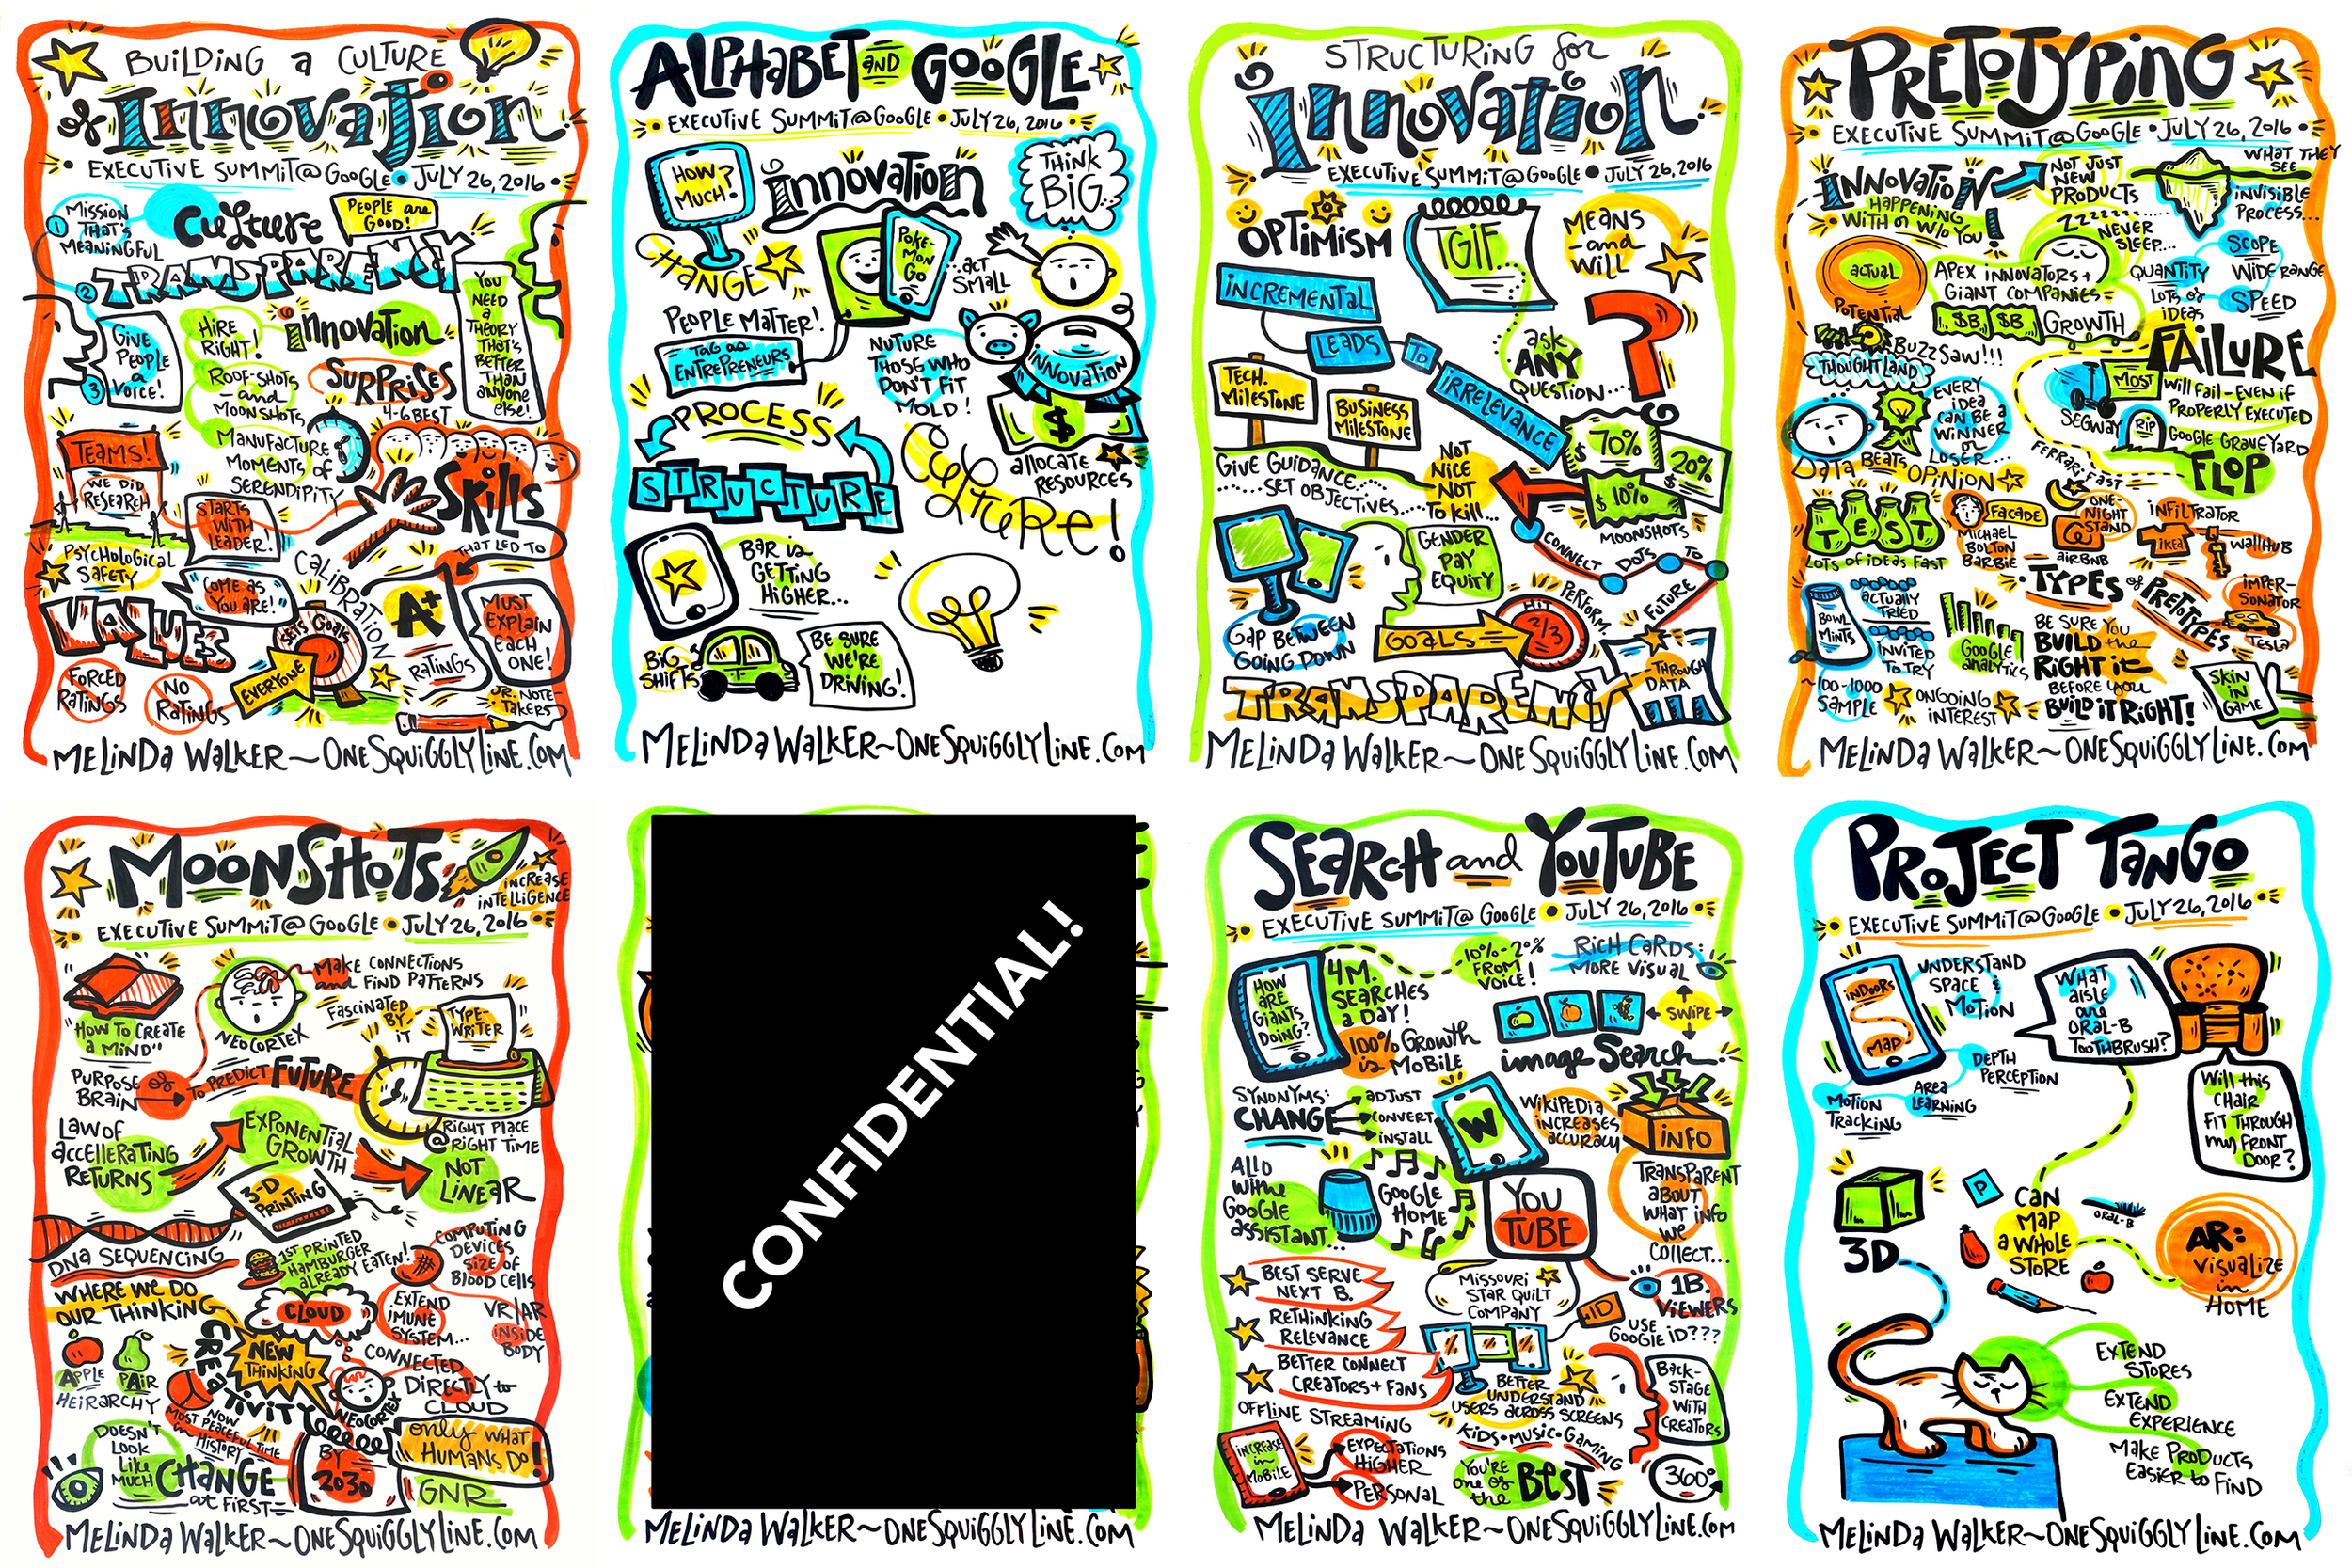 Live Illustrated Visual Notes (Graphic Recording): Executive Summit at Google HQ